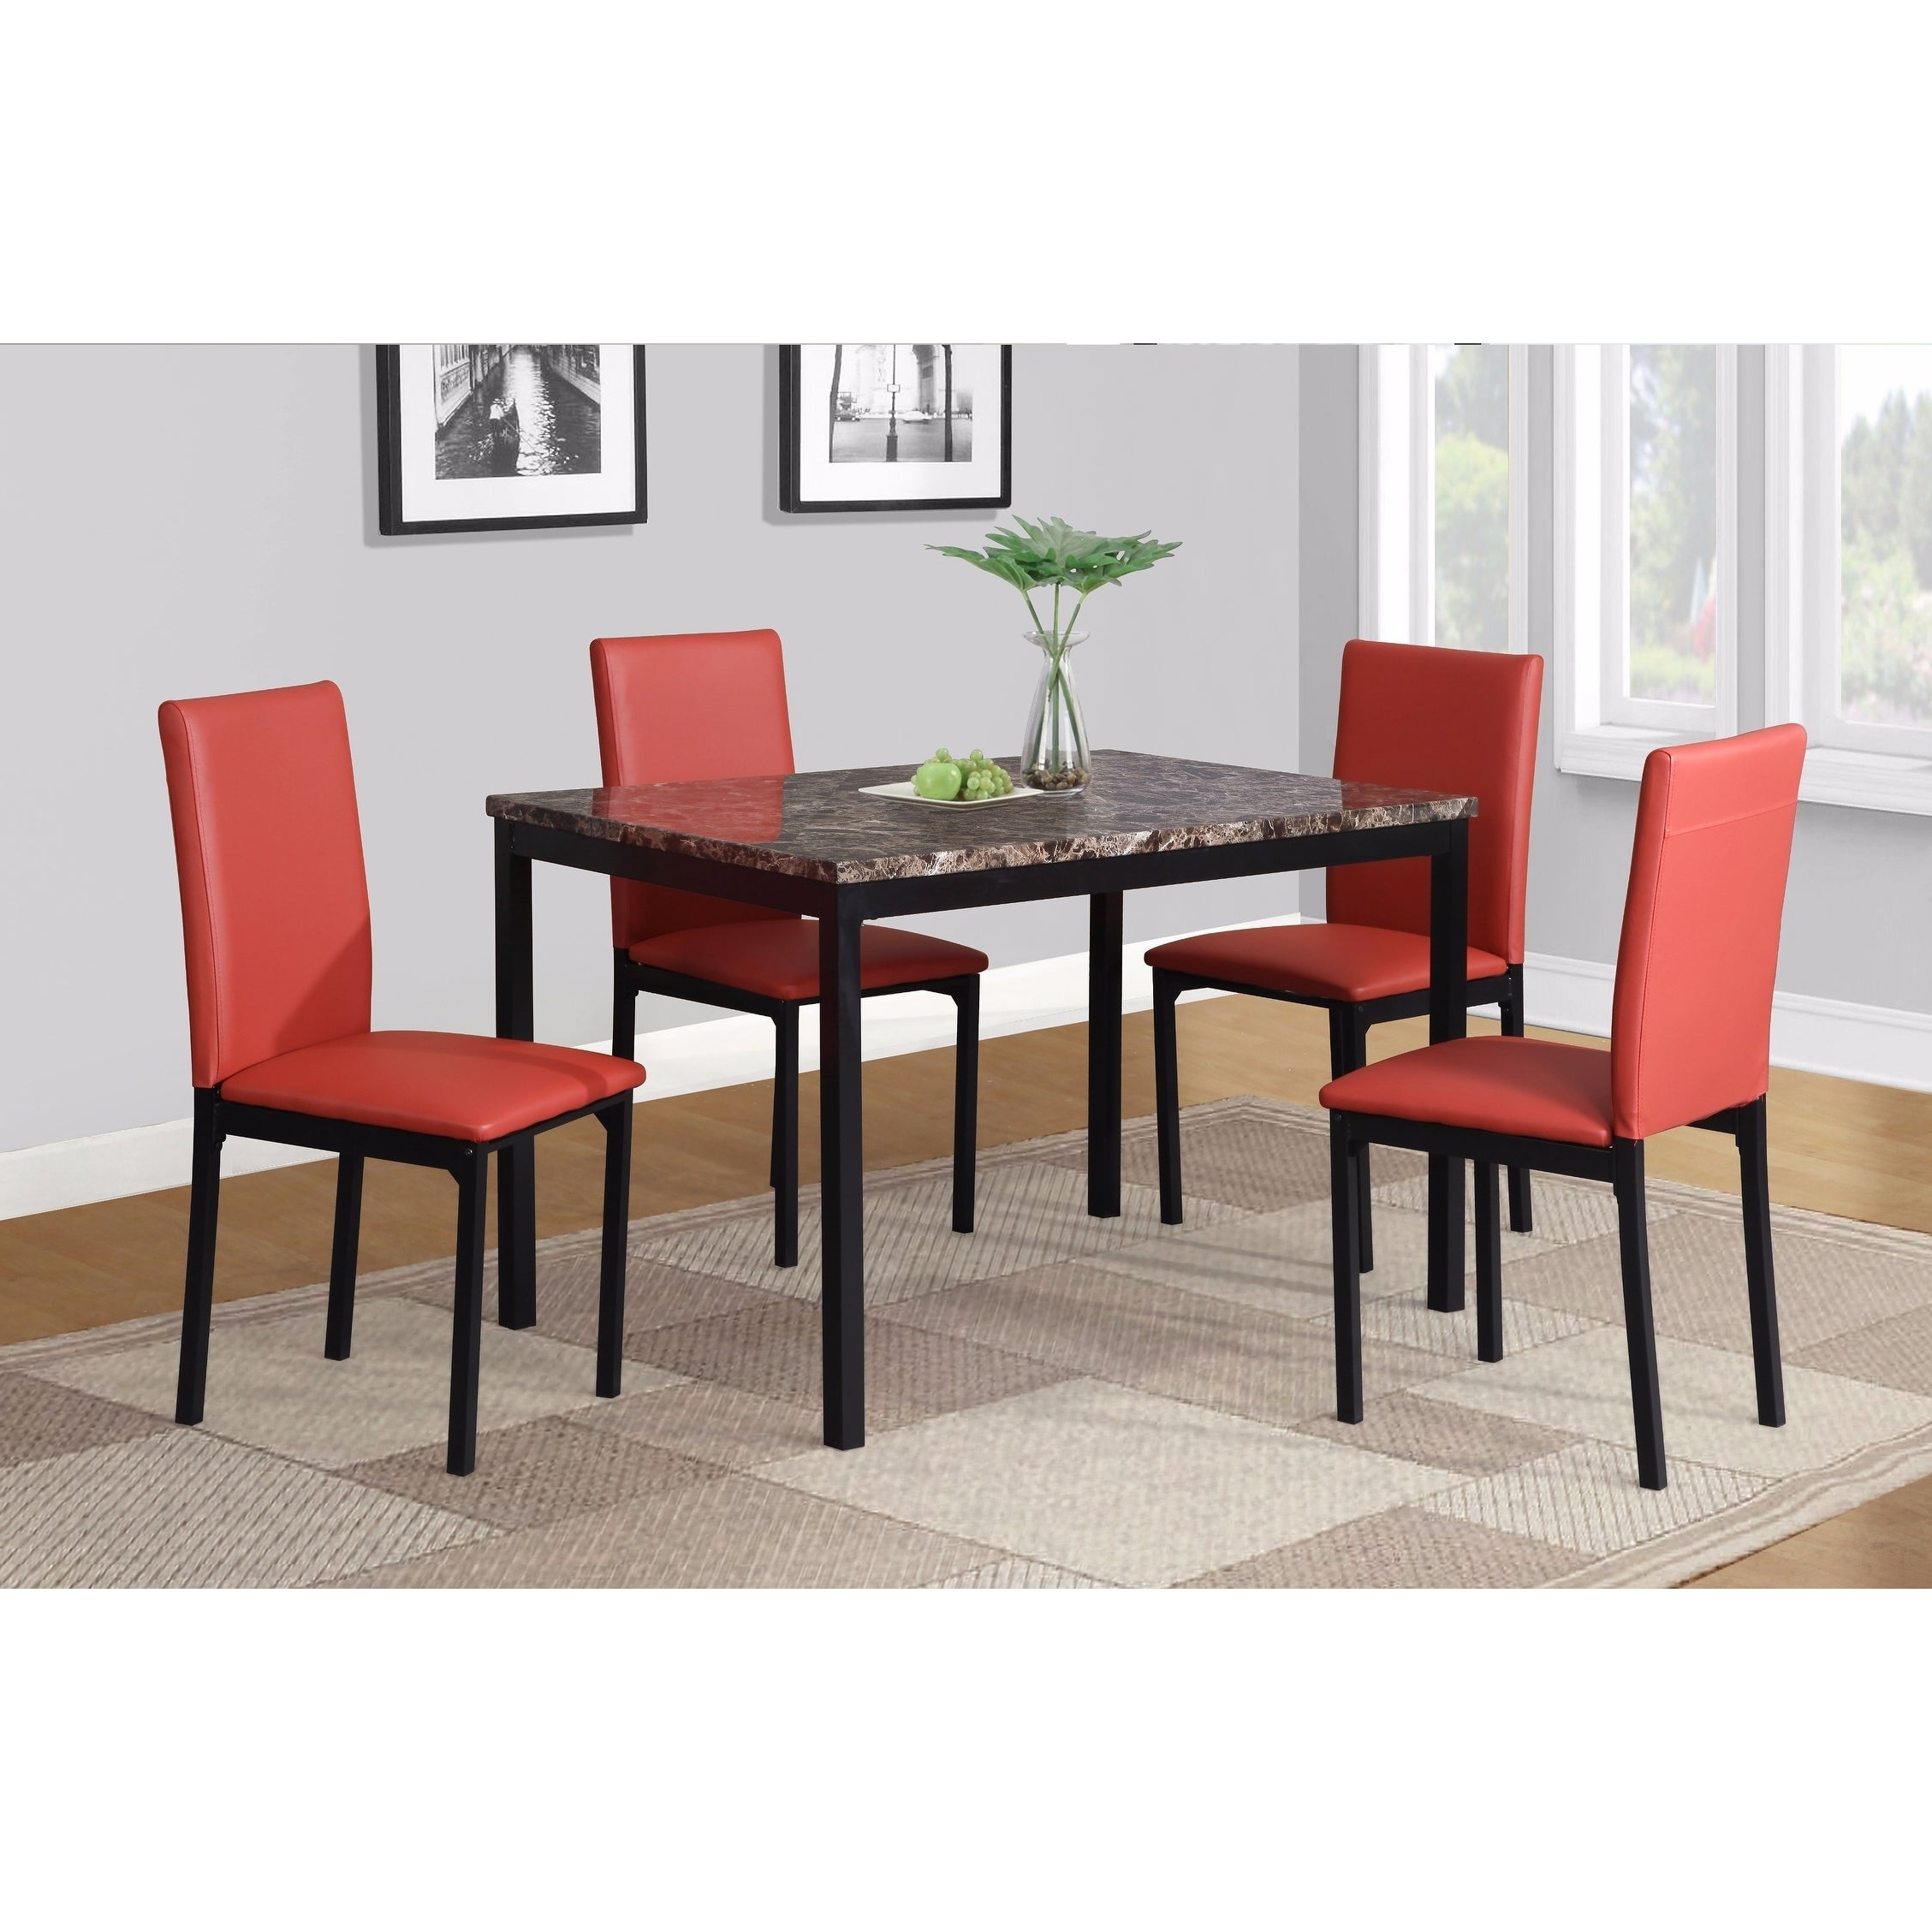 Most Up To Date Noyes Faux Leather Seat Metal Frame Black Dining Chairs, Set Of 4 Inside Noyes 5 Piece Dining Sets (View 6 of 20)